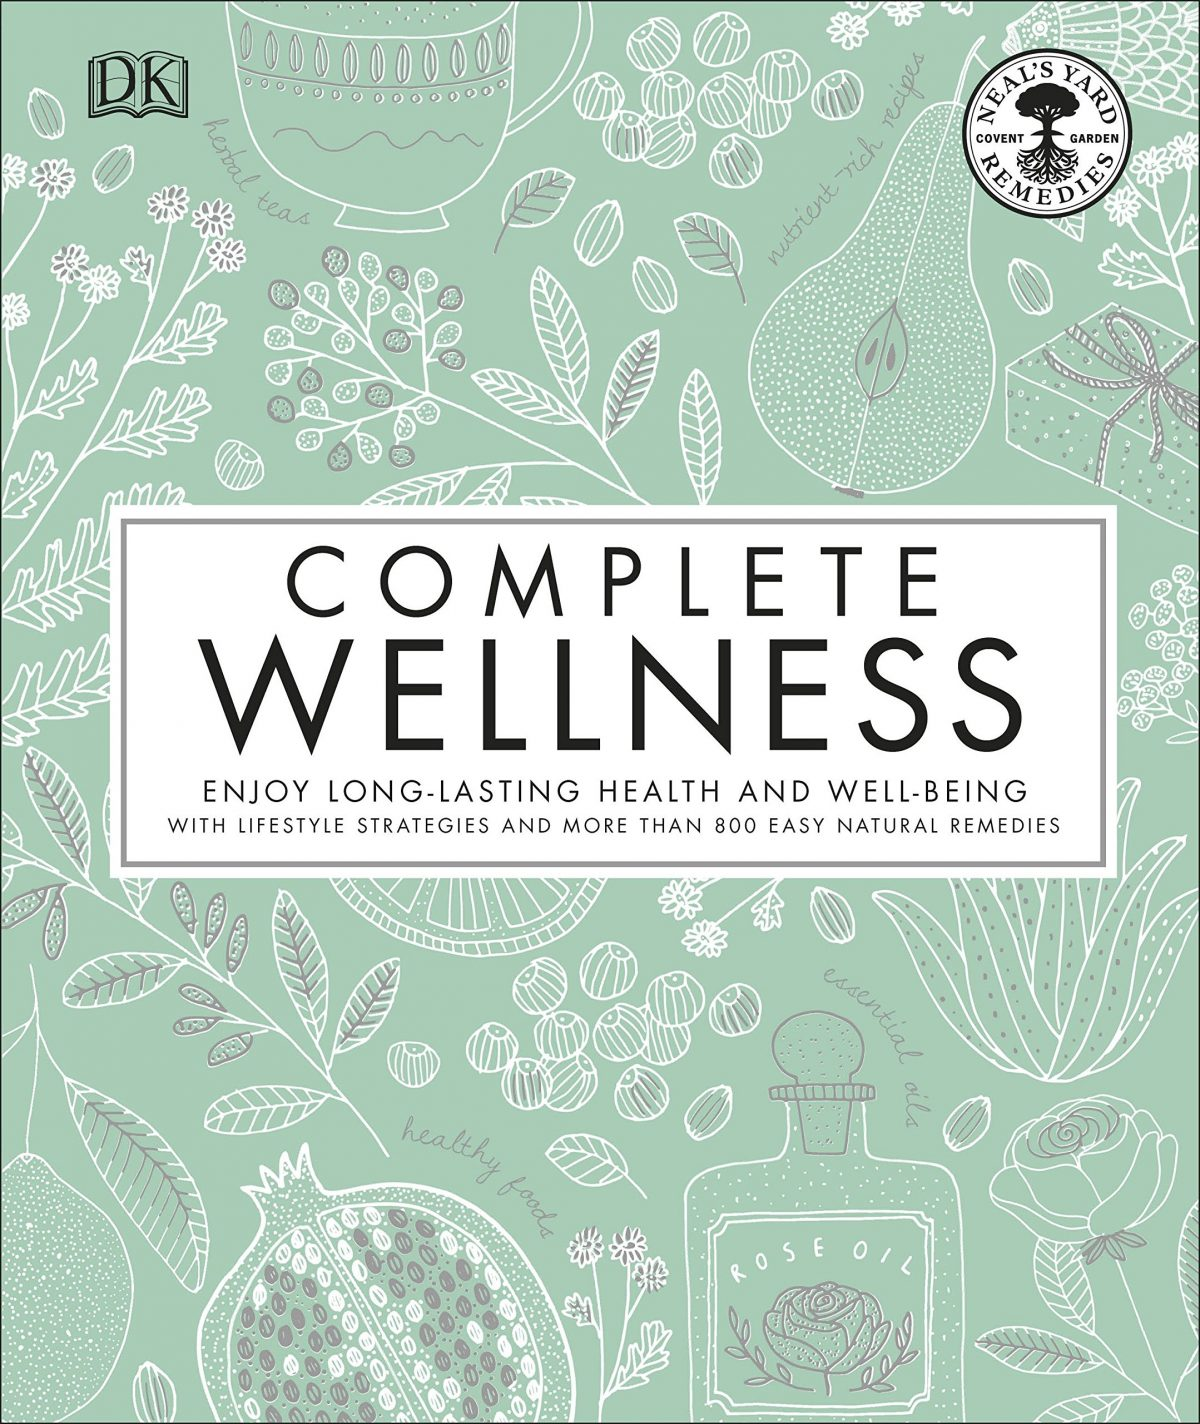 Complete Wellness. DK Canada. Image from Amazon. Review by Rhondda of Oombawka Design Crochet